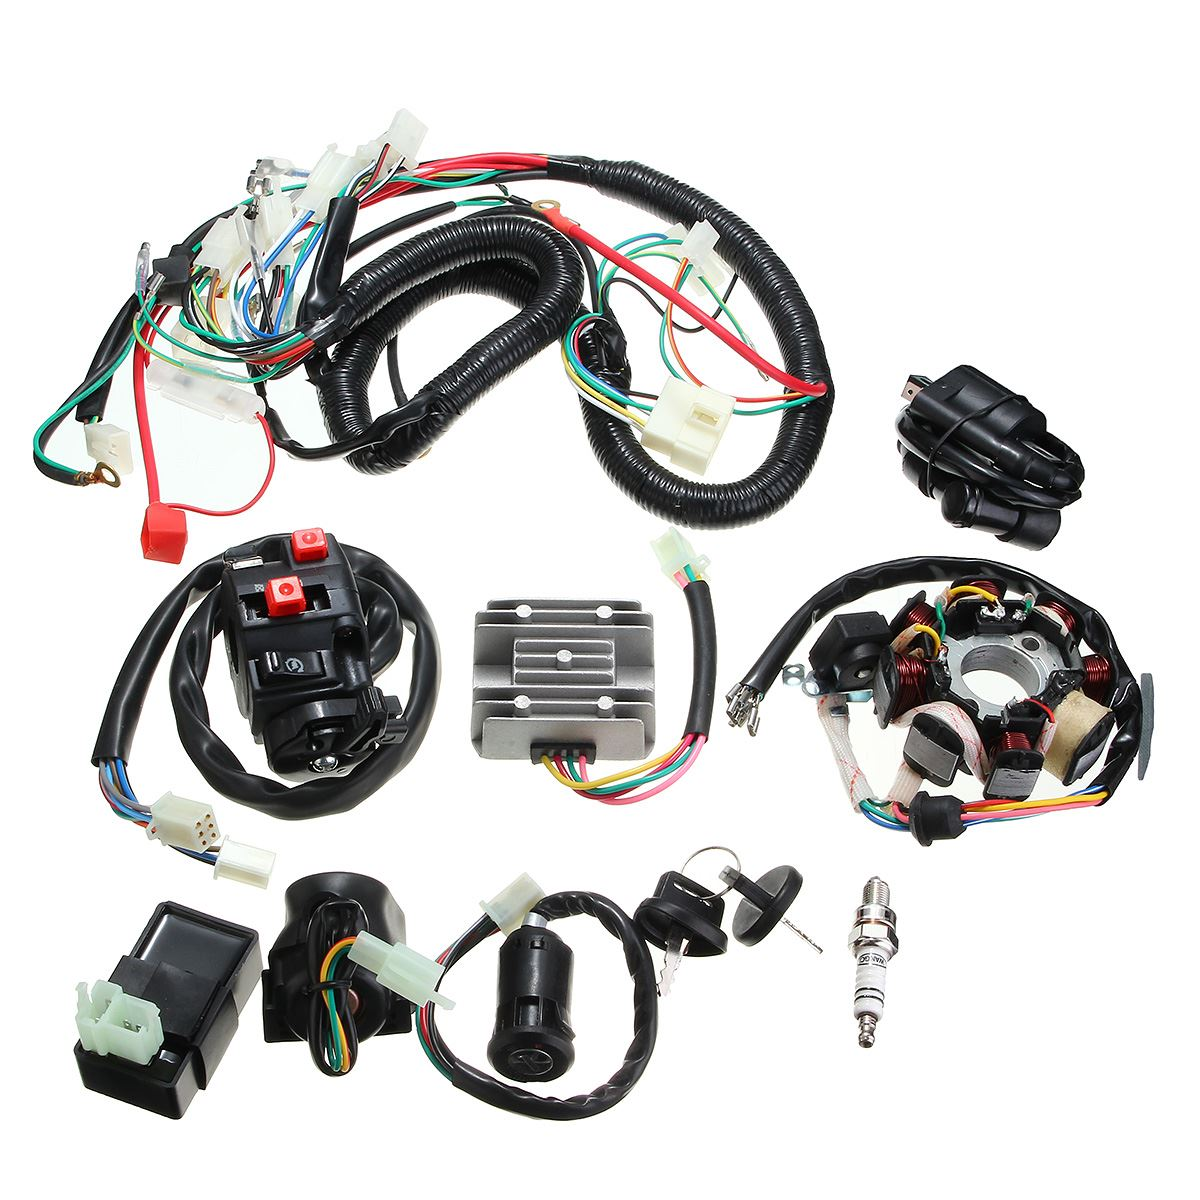 online buy whole engine wiring harness from engine 1 set quad electric cdi coil wire harness stator assembly wiring set for 125 150 200